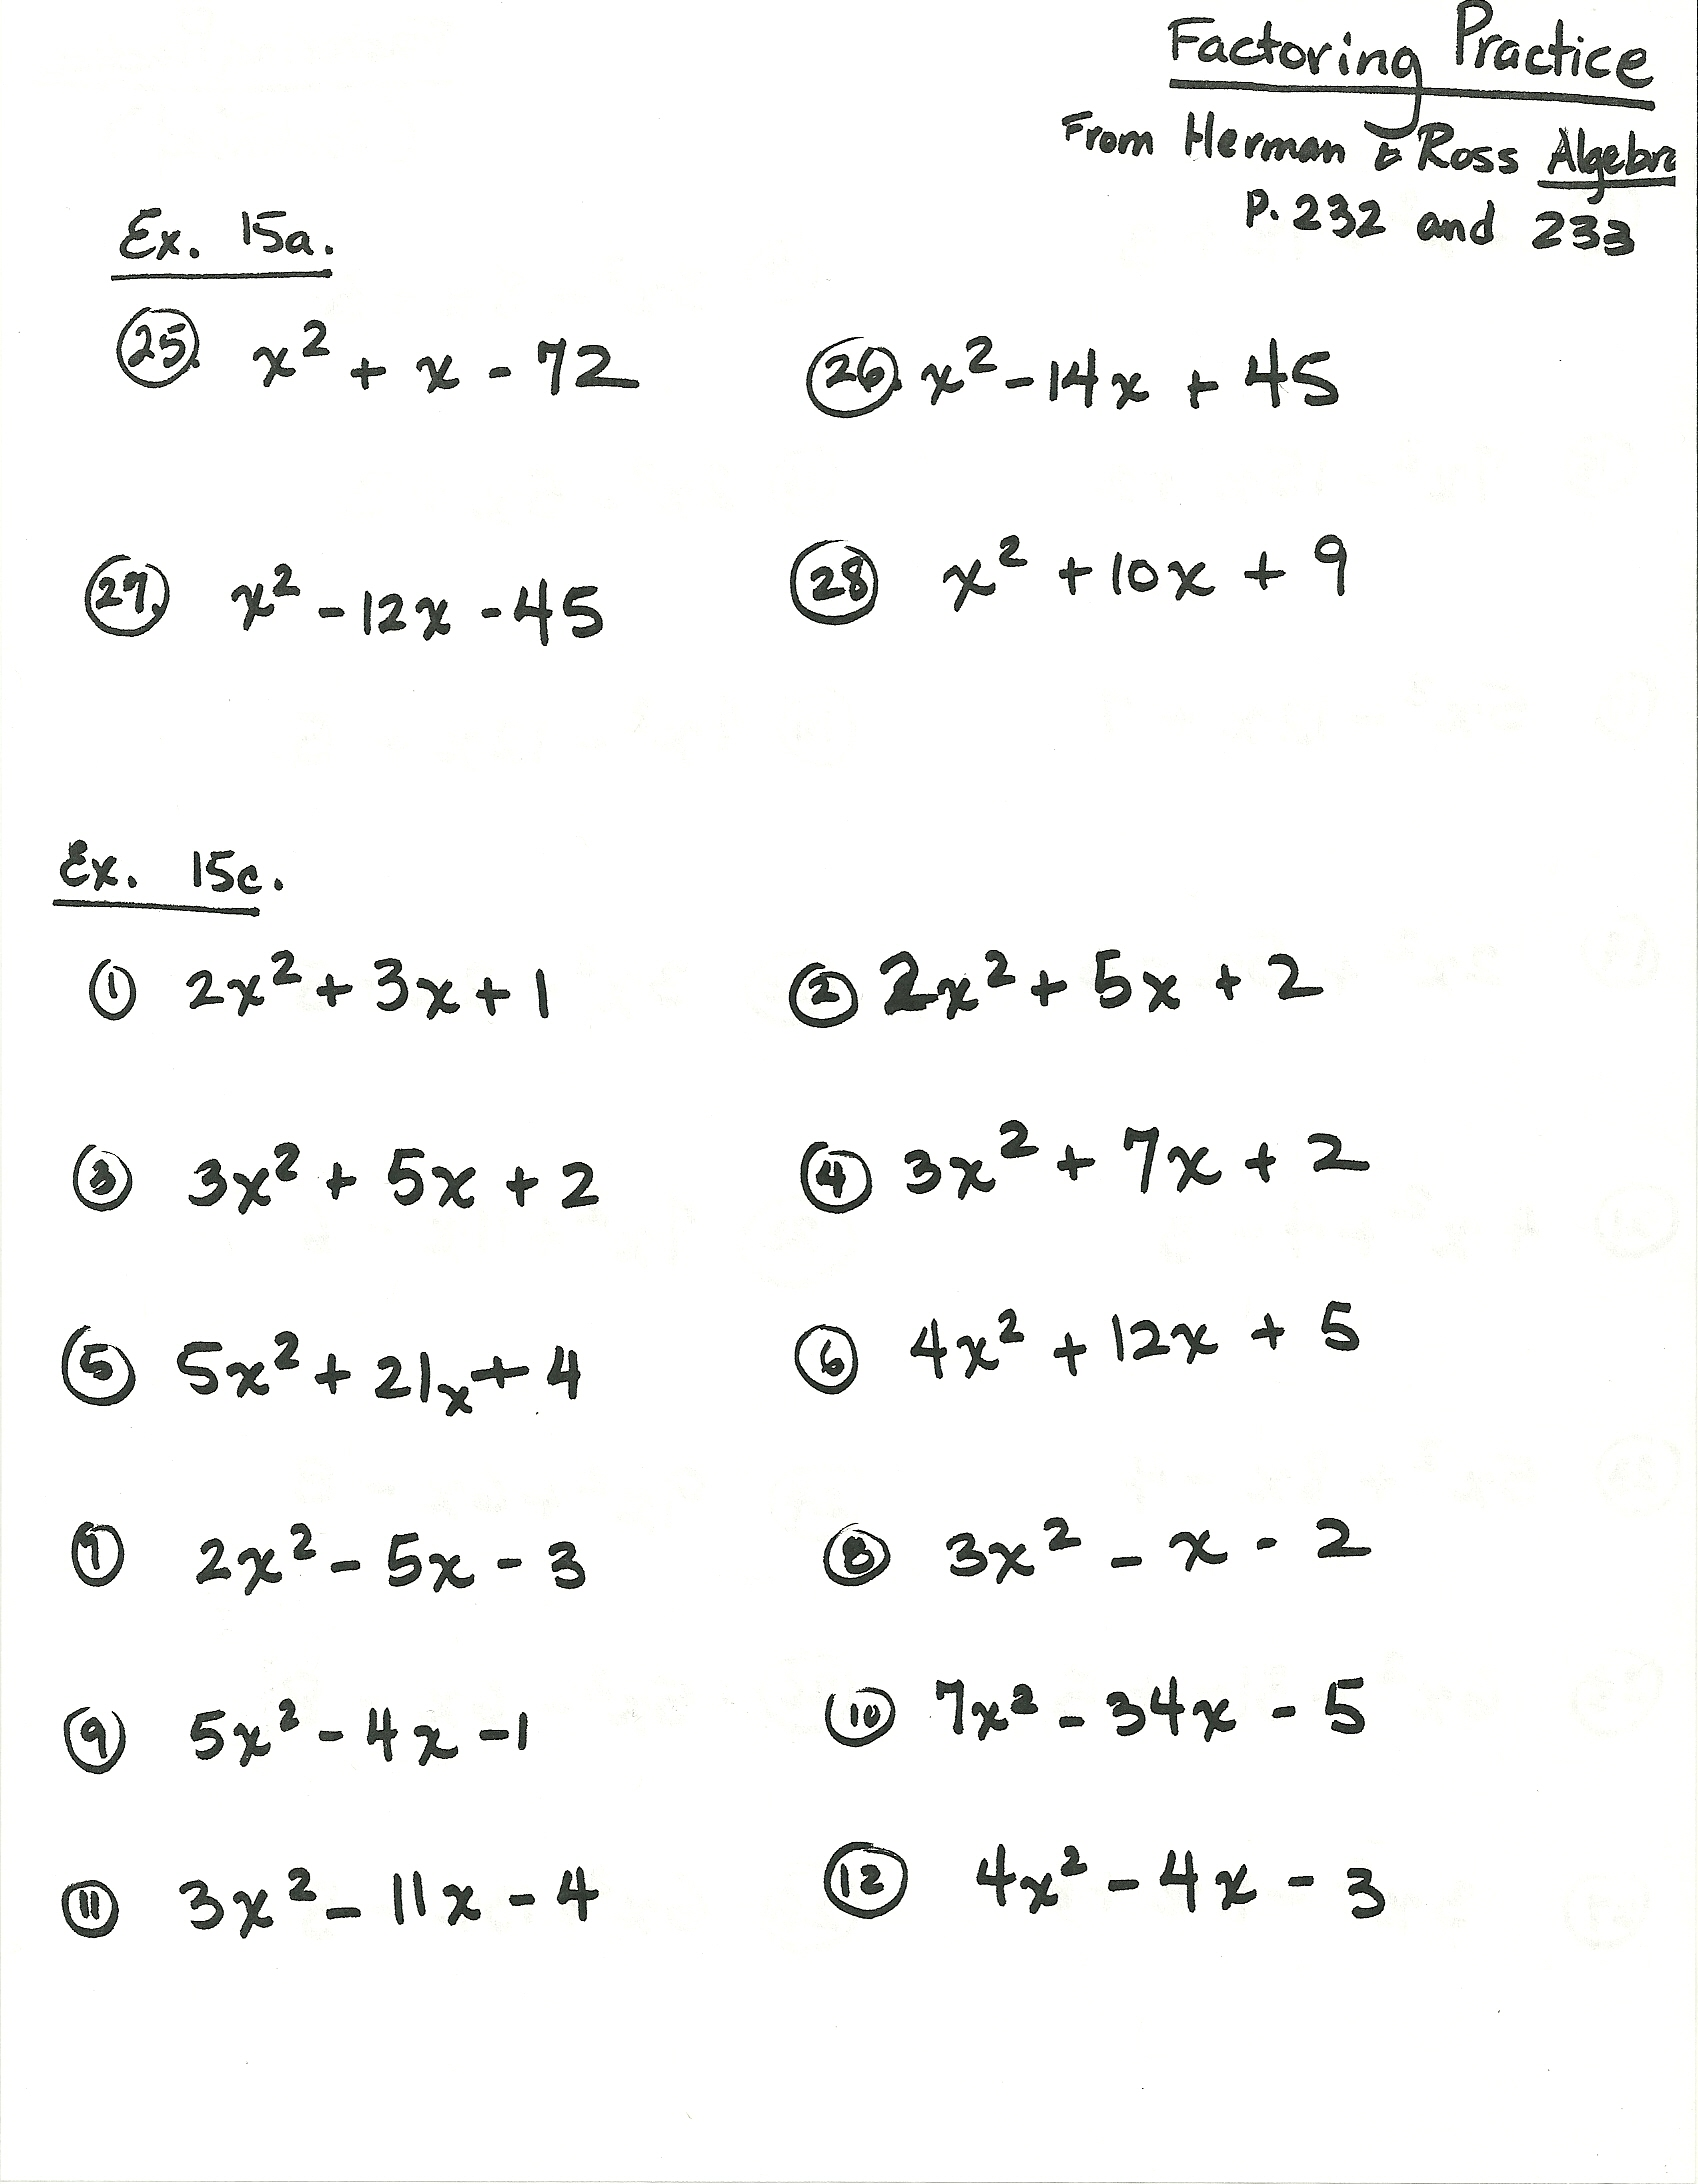 Worksheets Eighth Grade Algebra Worksheets 8th grade algebra 1 worksheets free library download dynamically created worksheets